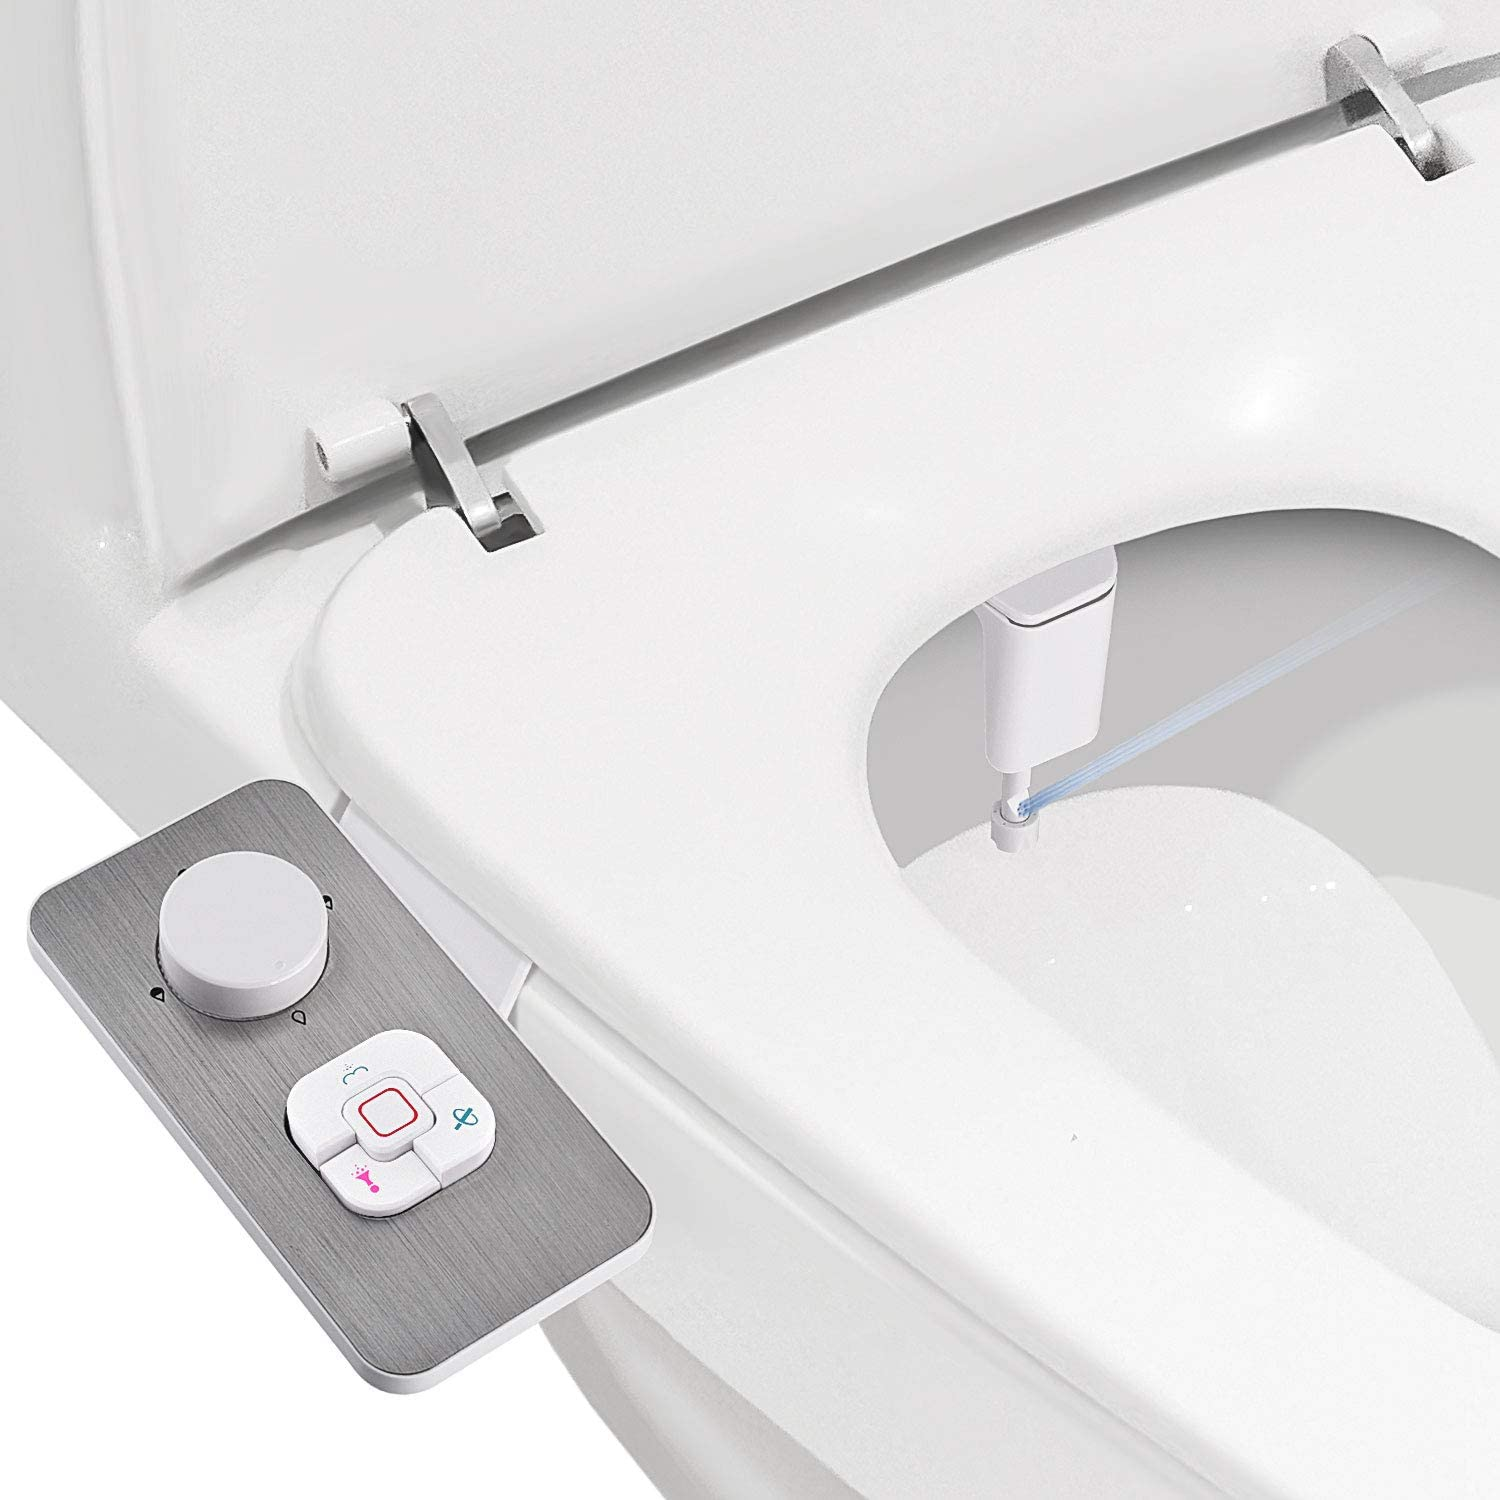 Samodra bidet attachment